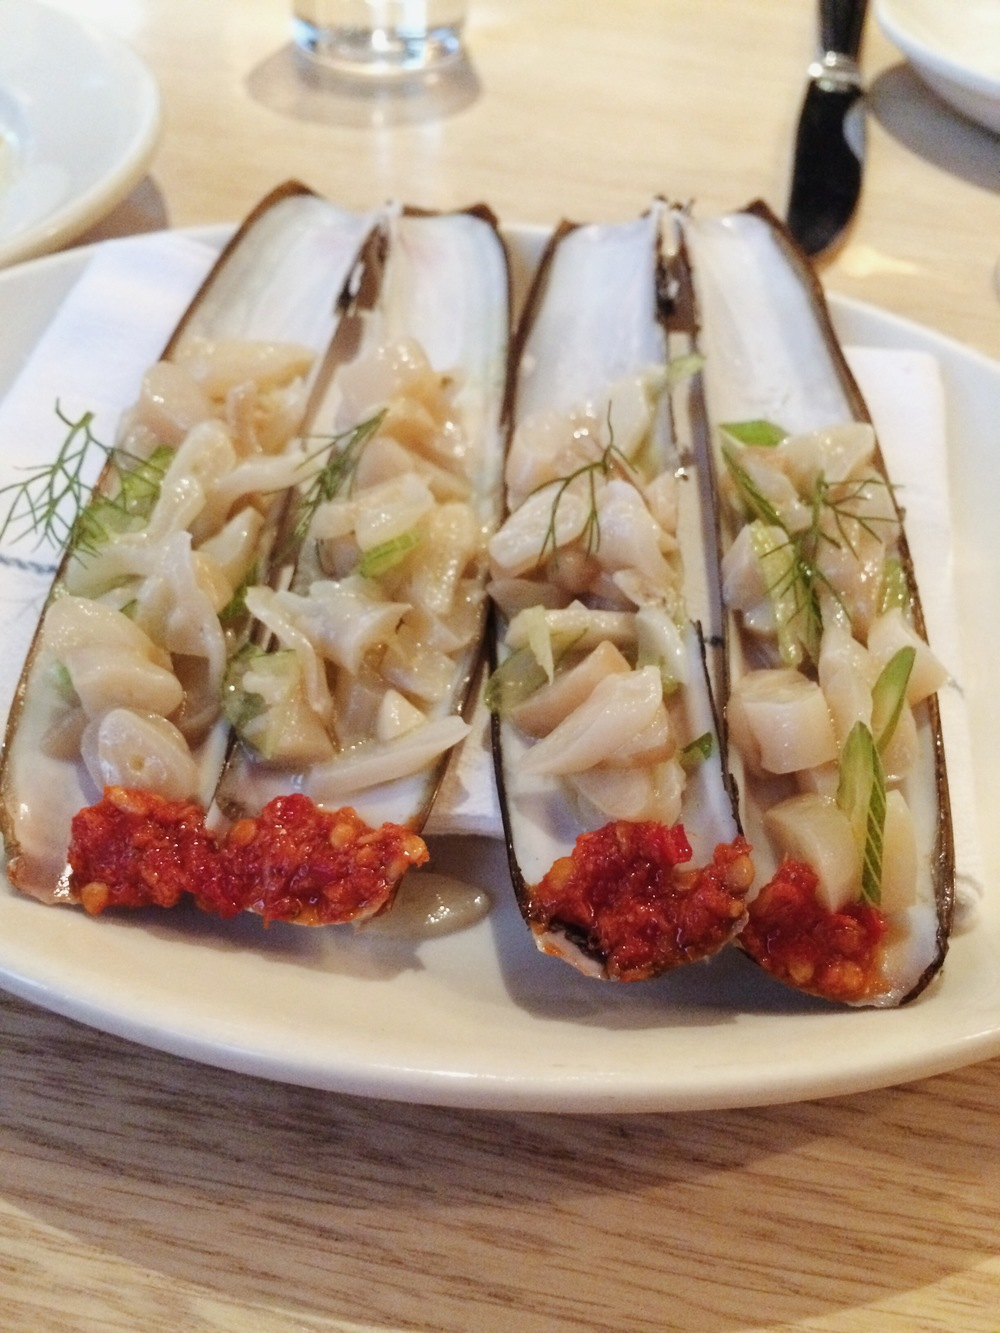 The razor clams with pickled chiles and fennel, one of the exquisite crudo dishes Chef Ryan presents.